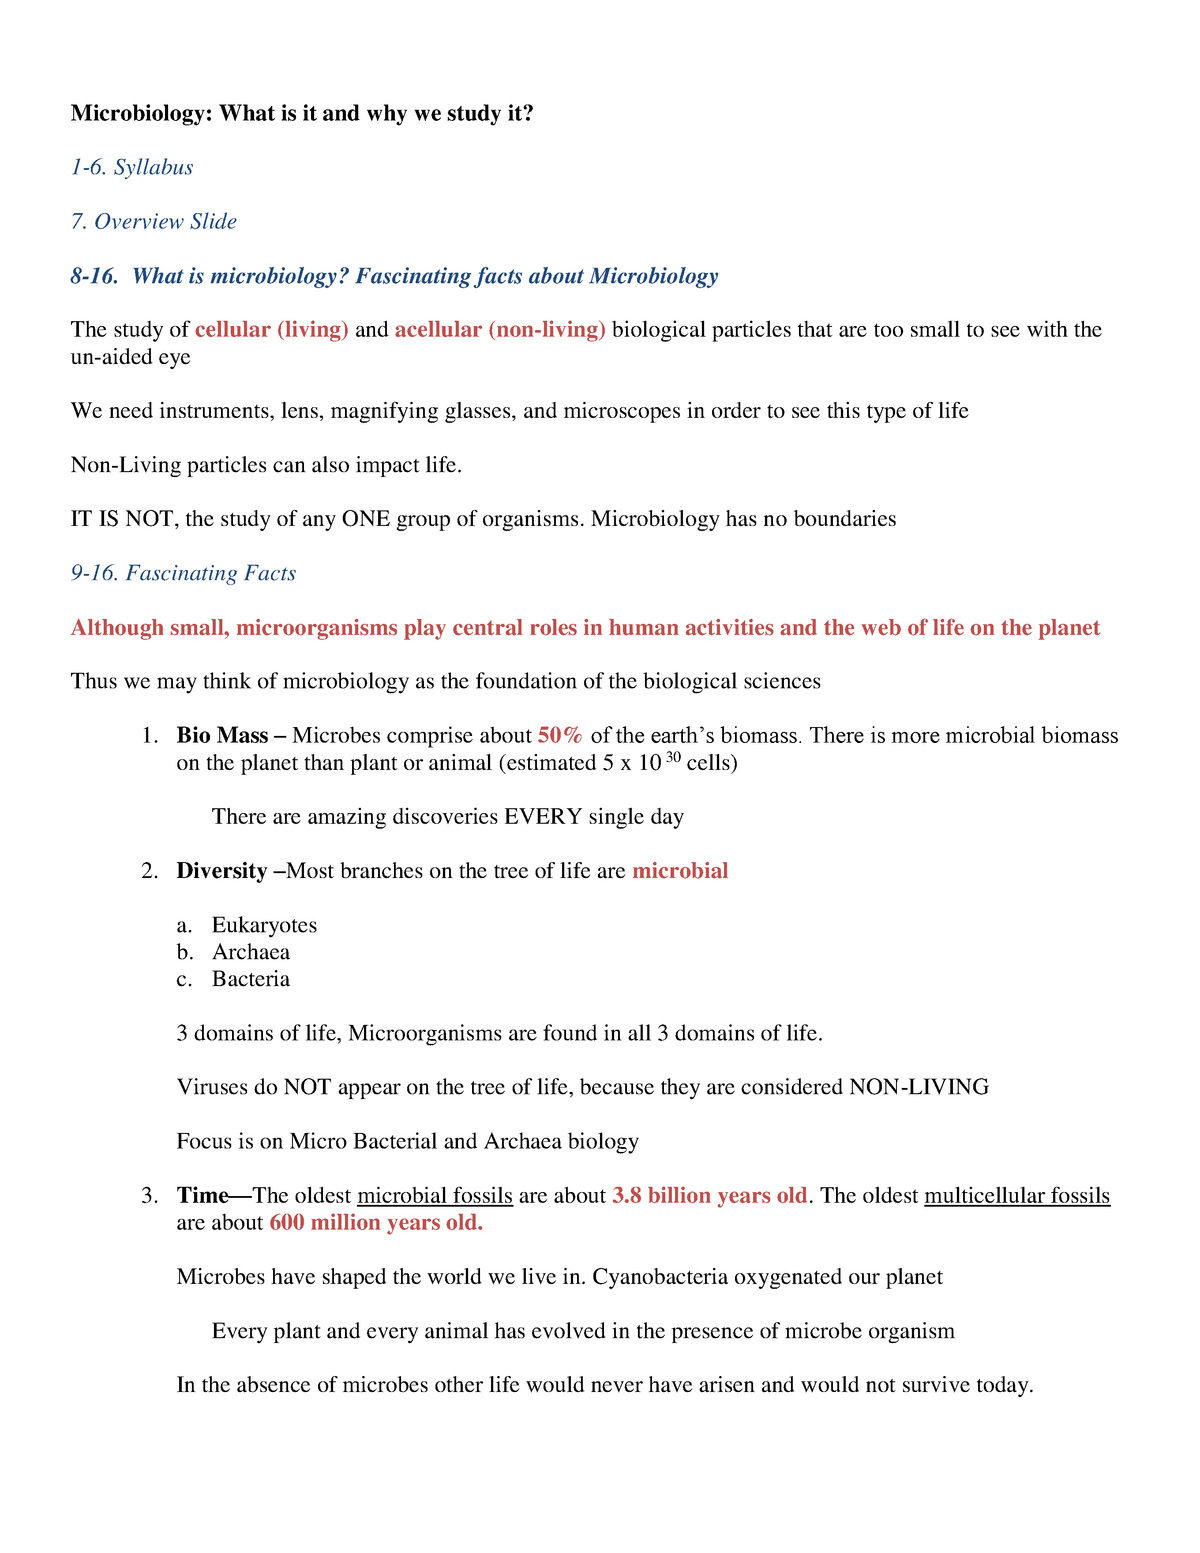 Microbiology - Lecture notes - 1 17 12 - BIOL 351: Microbiology